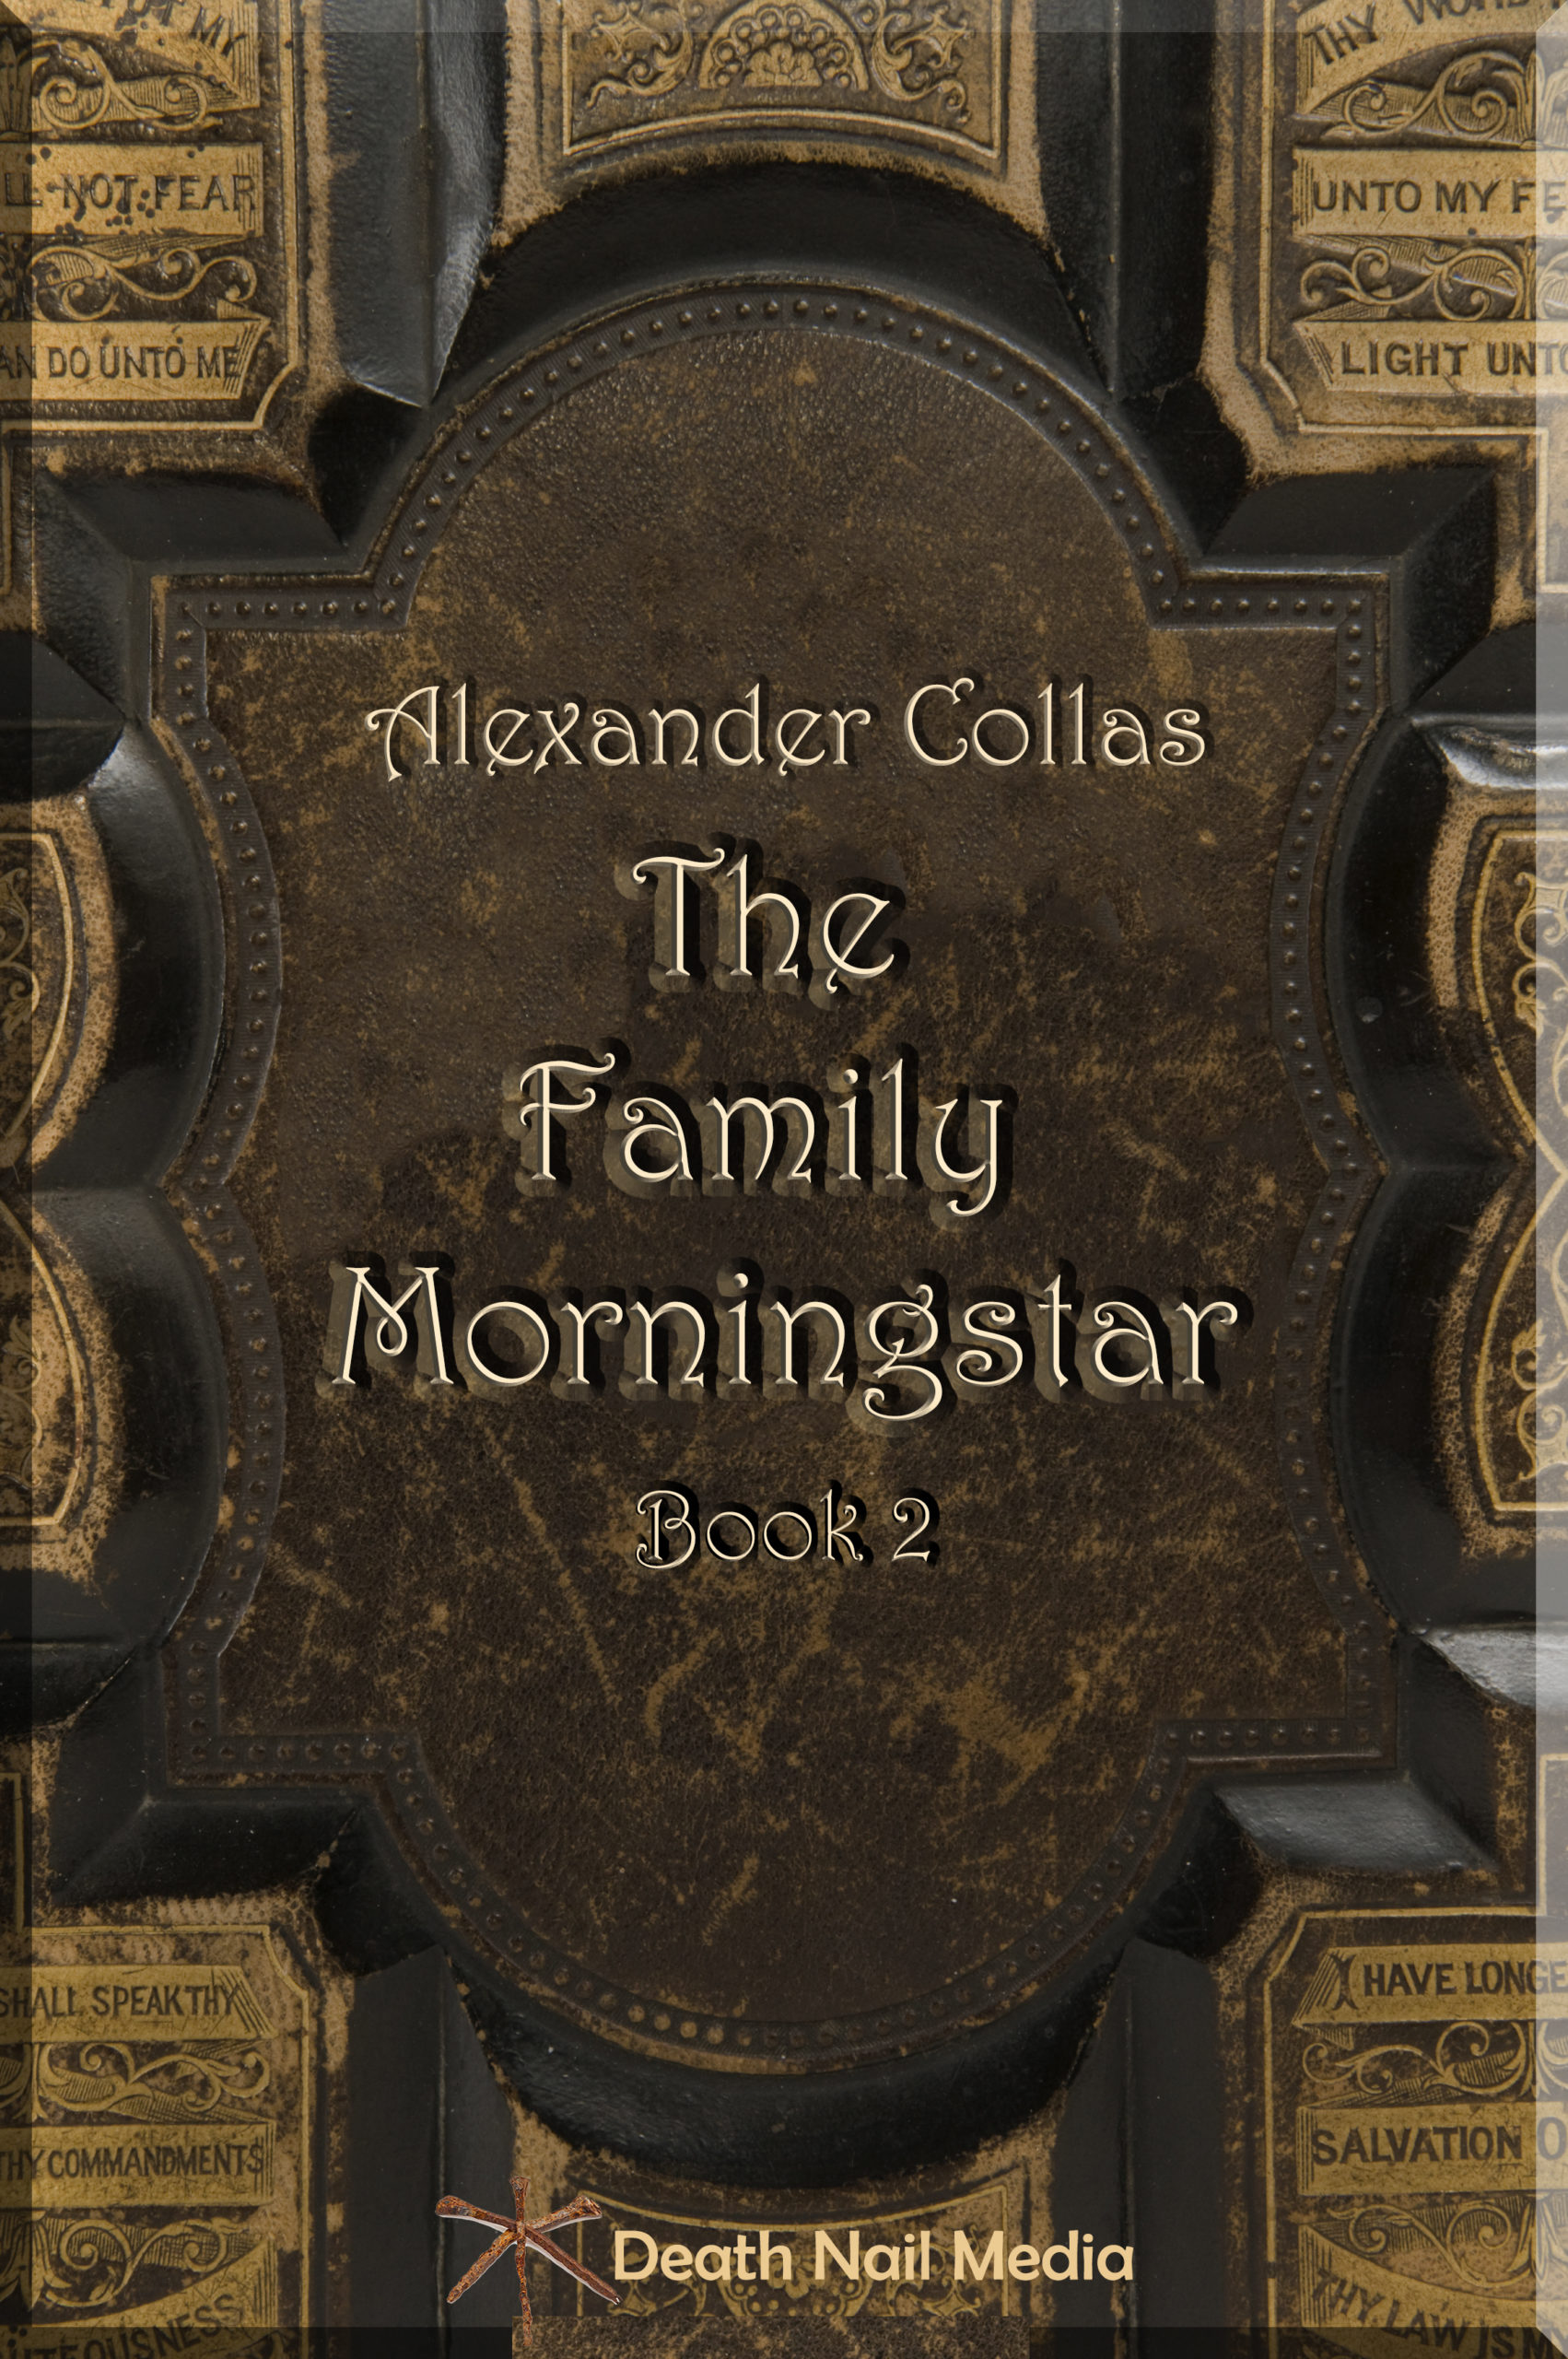 The Family Morningstar: Book 2